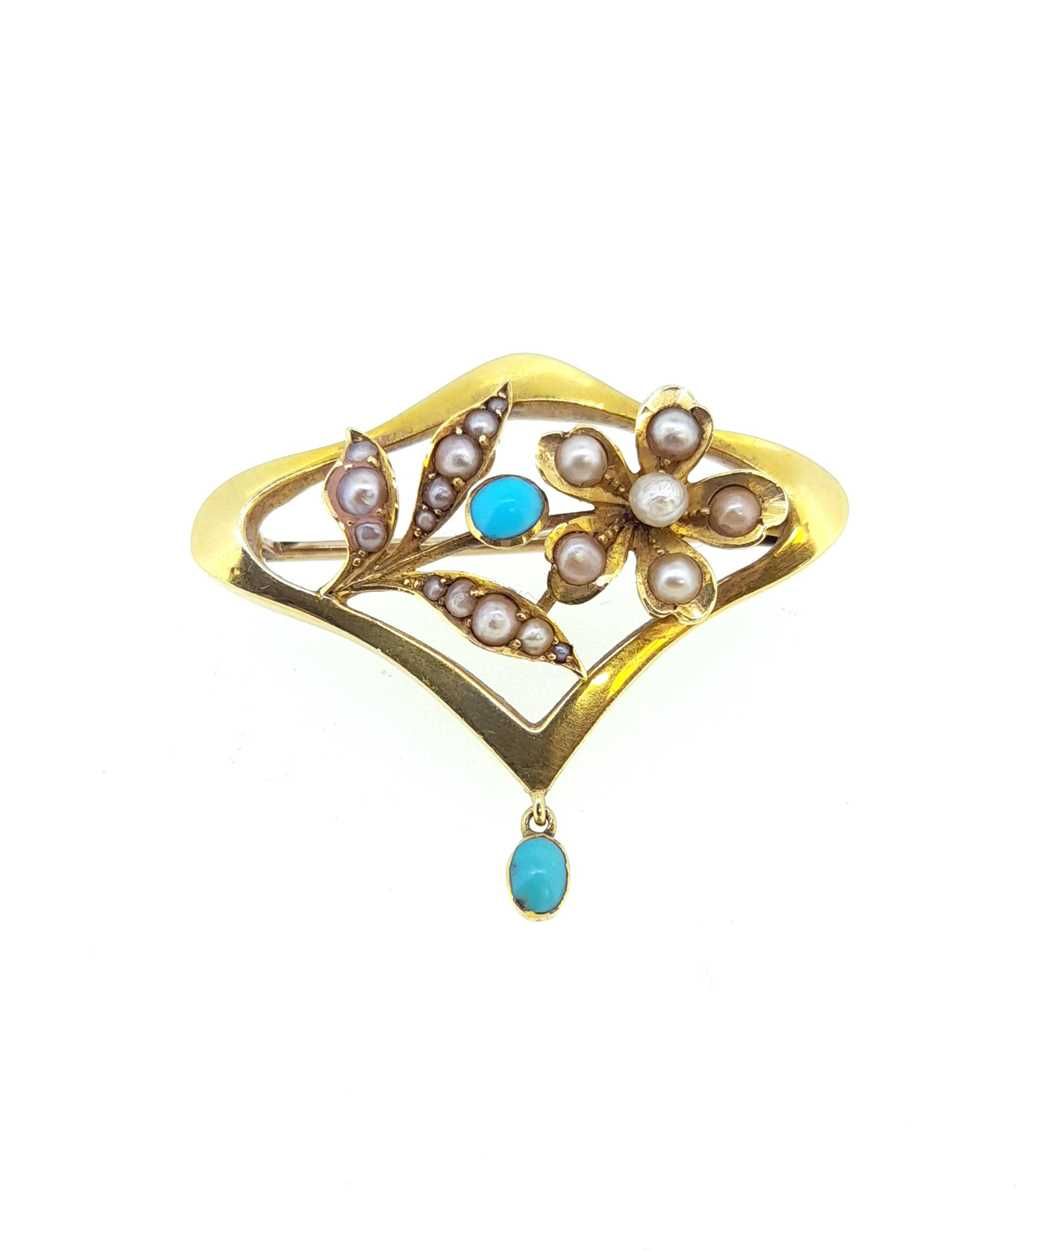 A pearl and diamond crescent bangle and a pearl and turquoise Art Nouveau brooch, - Image 5 of 6